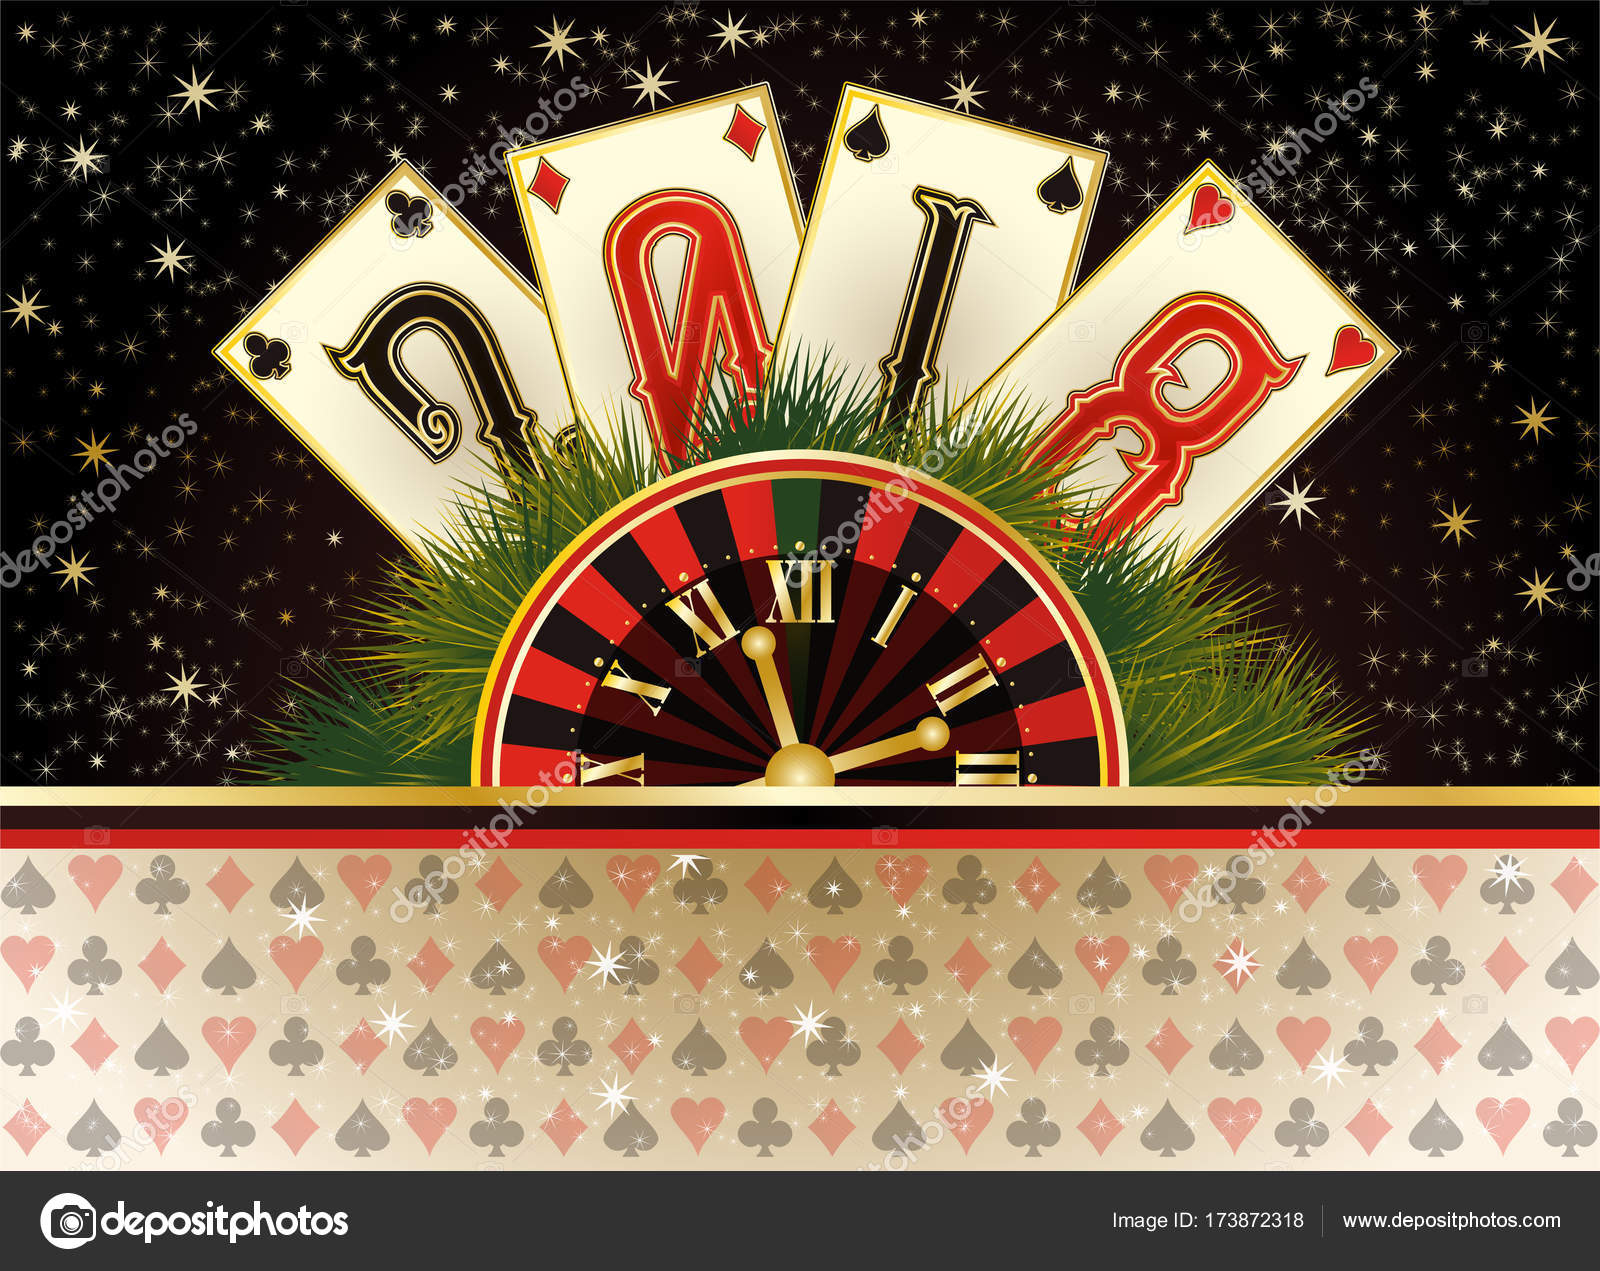 When Can Be The Perfect Time To Begin Gambling